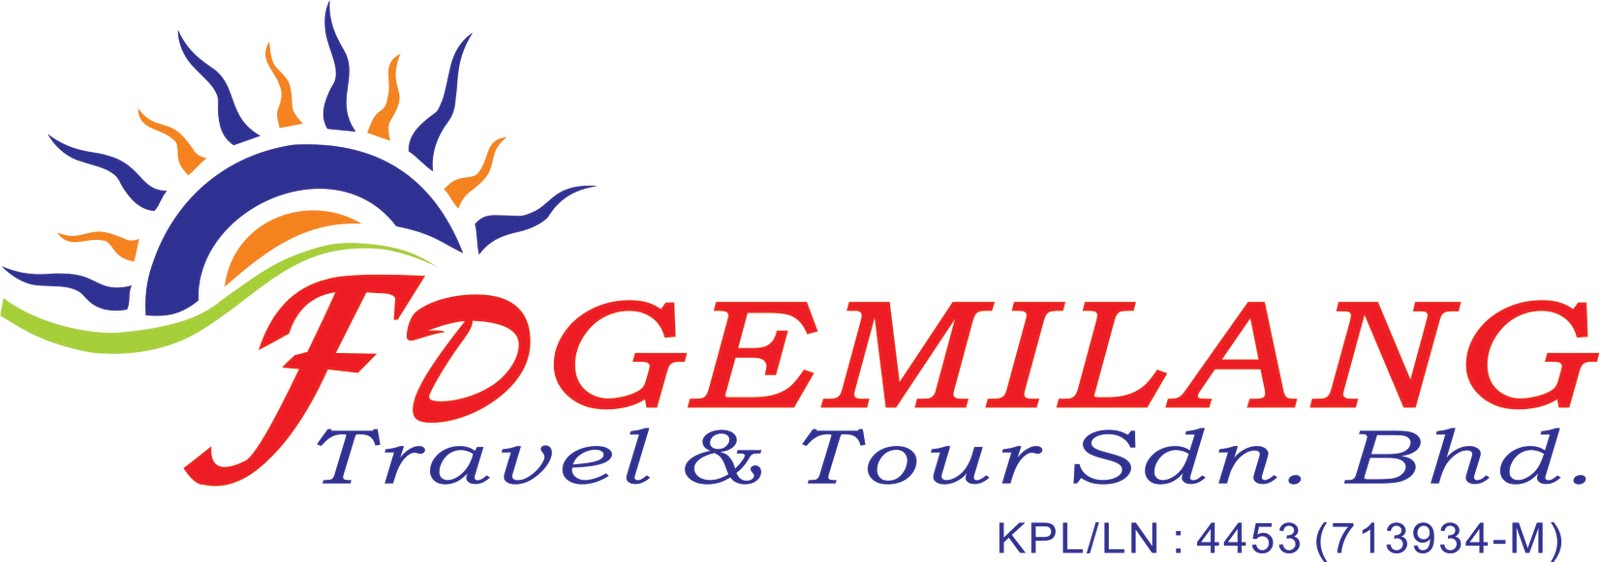 FD Gemilang Travel & Tour